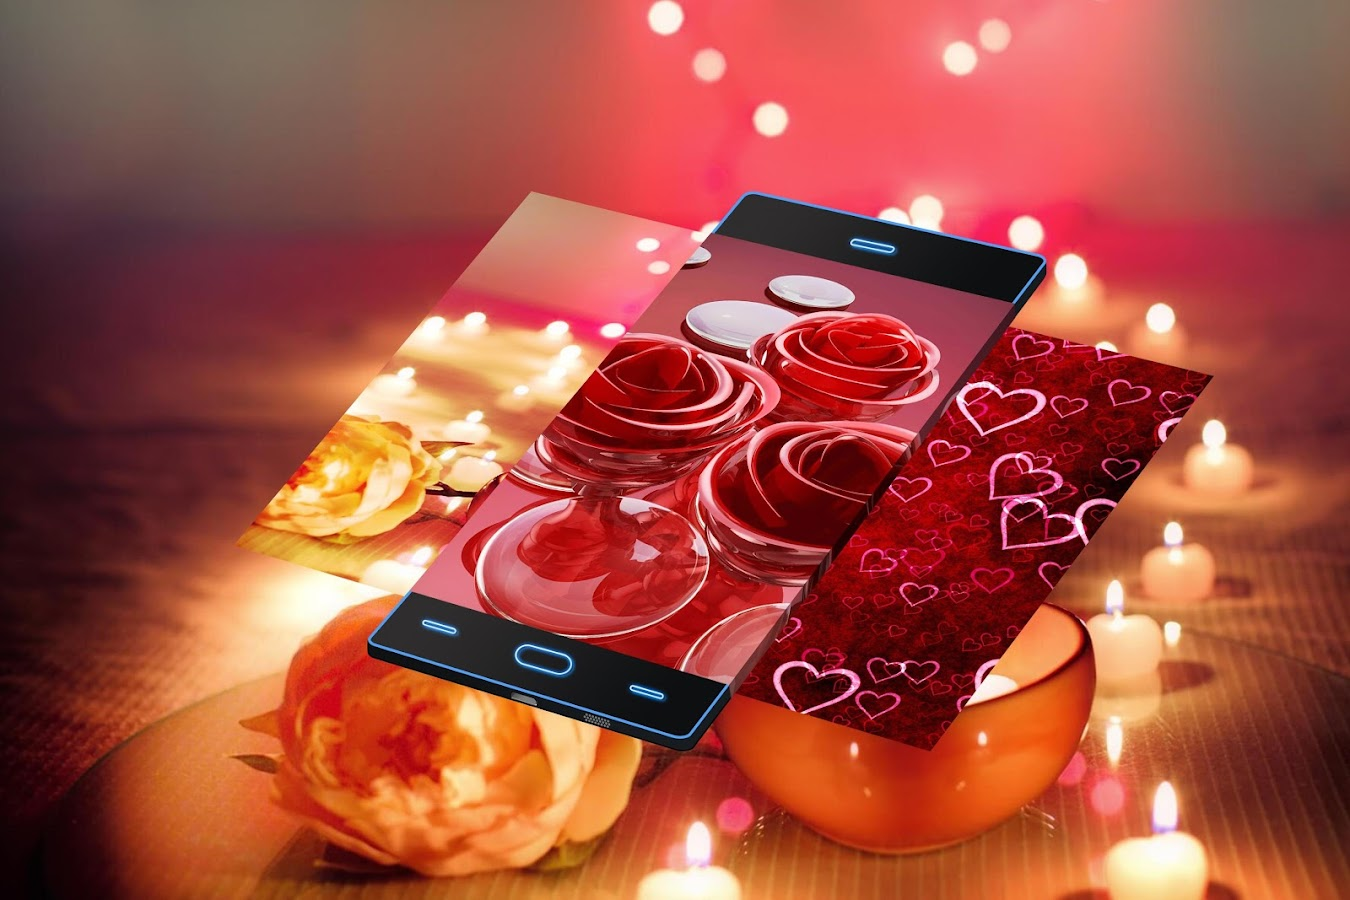 Free Wallpapers Android Themes: HD Wallpapers - Theme - Android Apps On Google Play